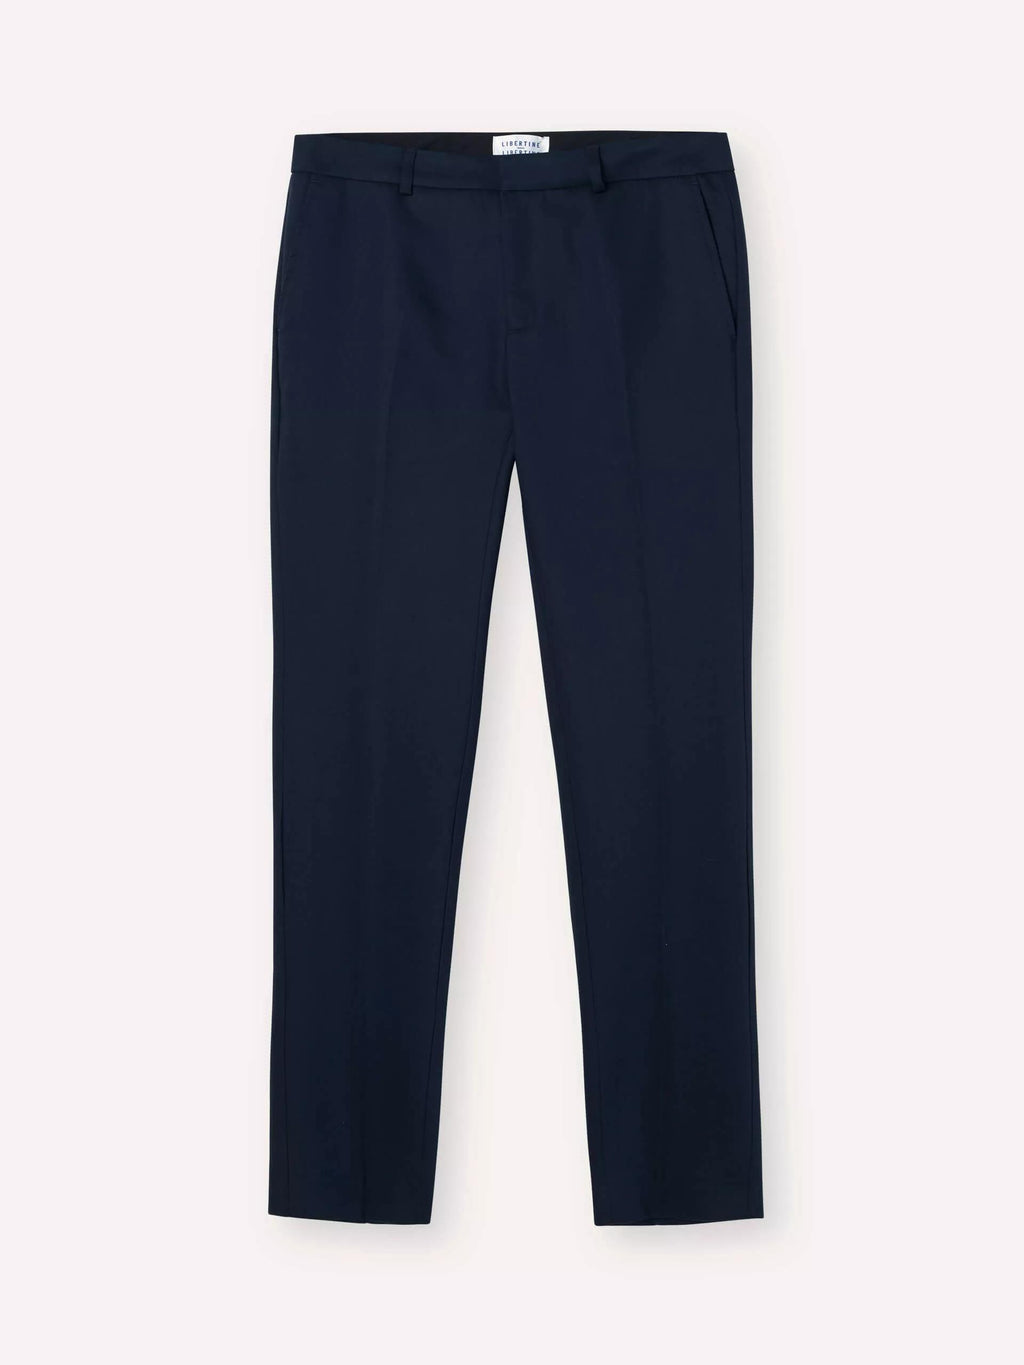 Transworld Dark Navy Trousers